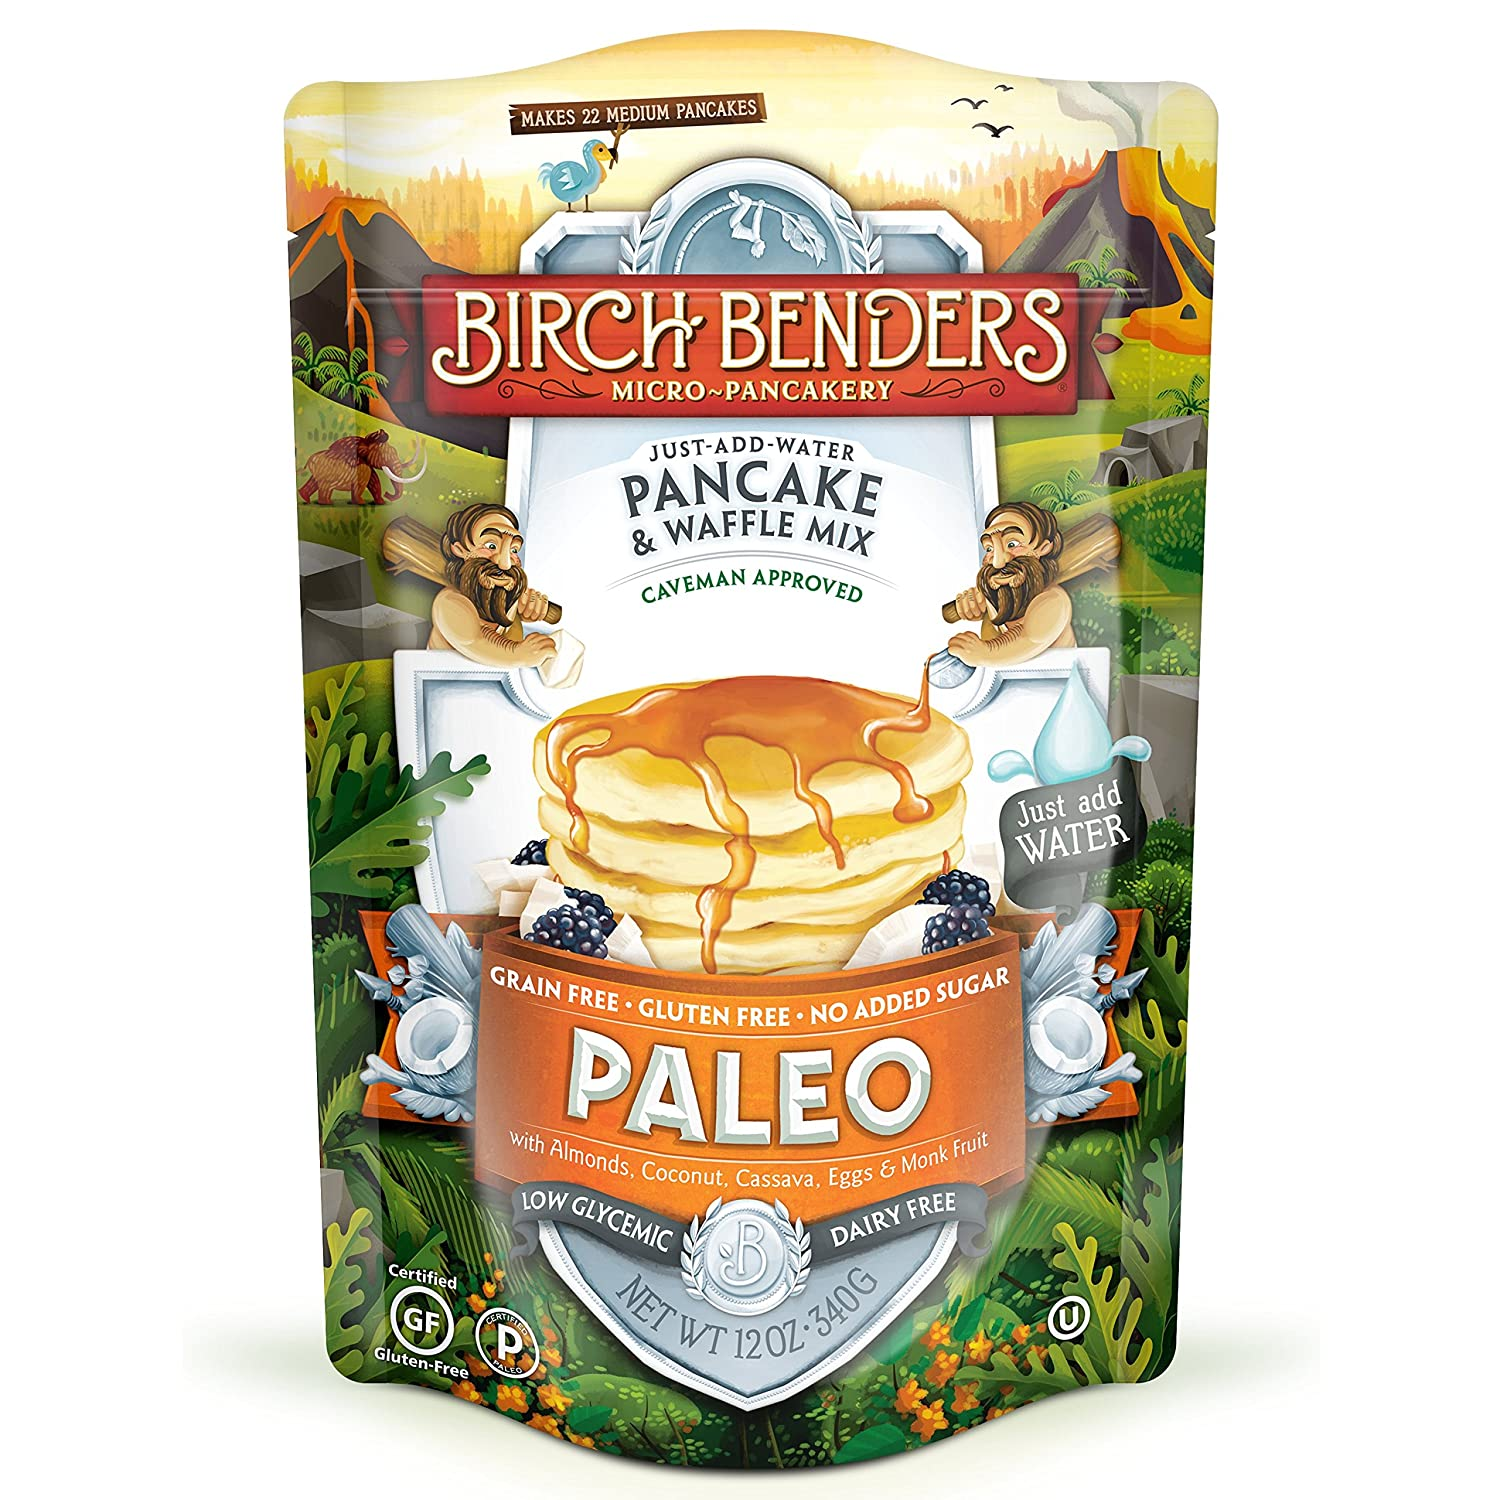 Paleo Pancake and Waffle Mix by Birch Benders, Low-Carb, High Protein, High Fiber, Gluten-free, Low Glycemic, Prebiotic, Made with Cassava, Coconut & Almond Flour, 12 Ounce